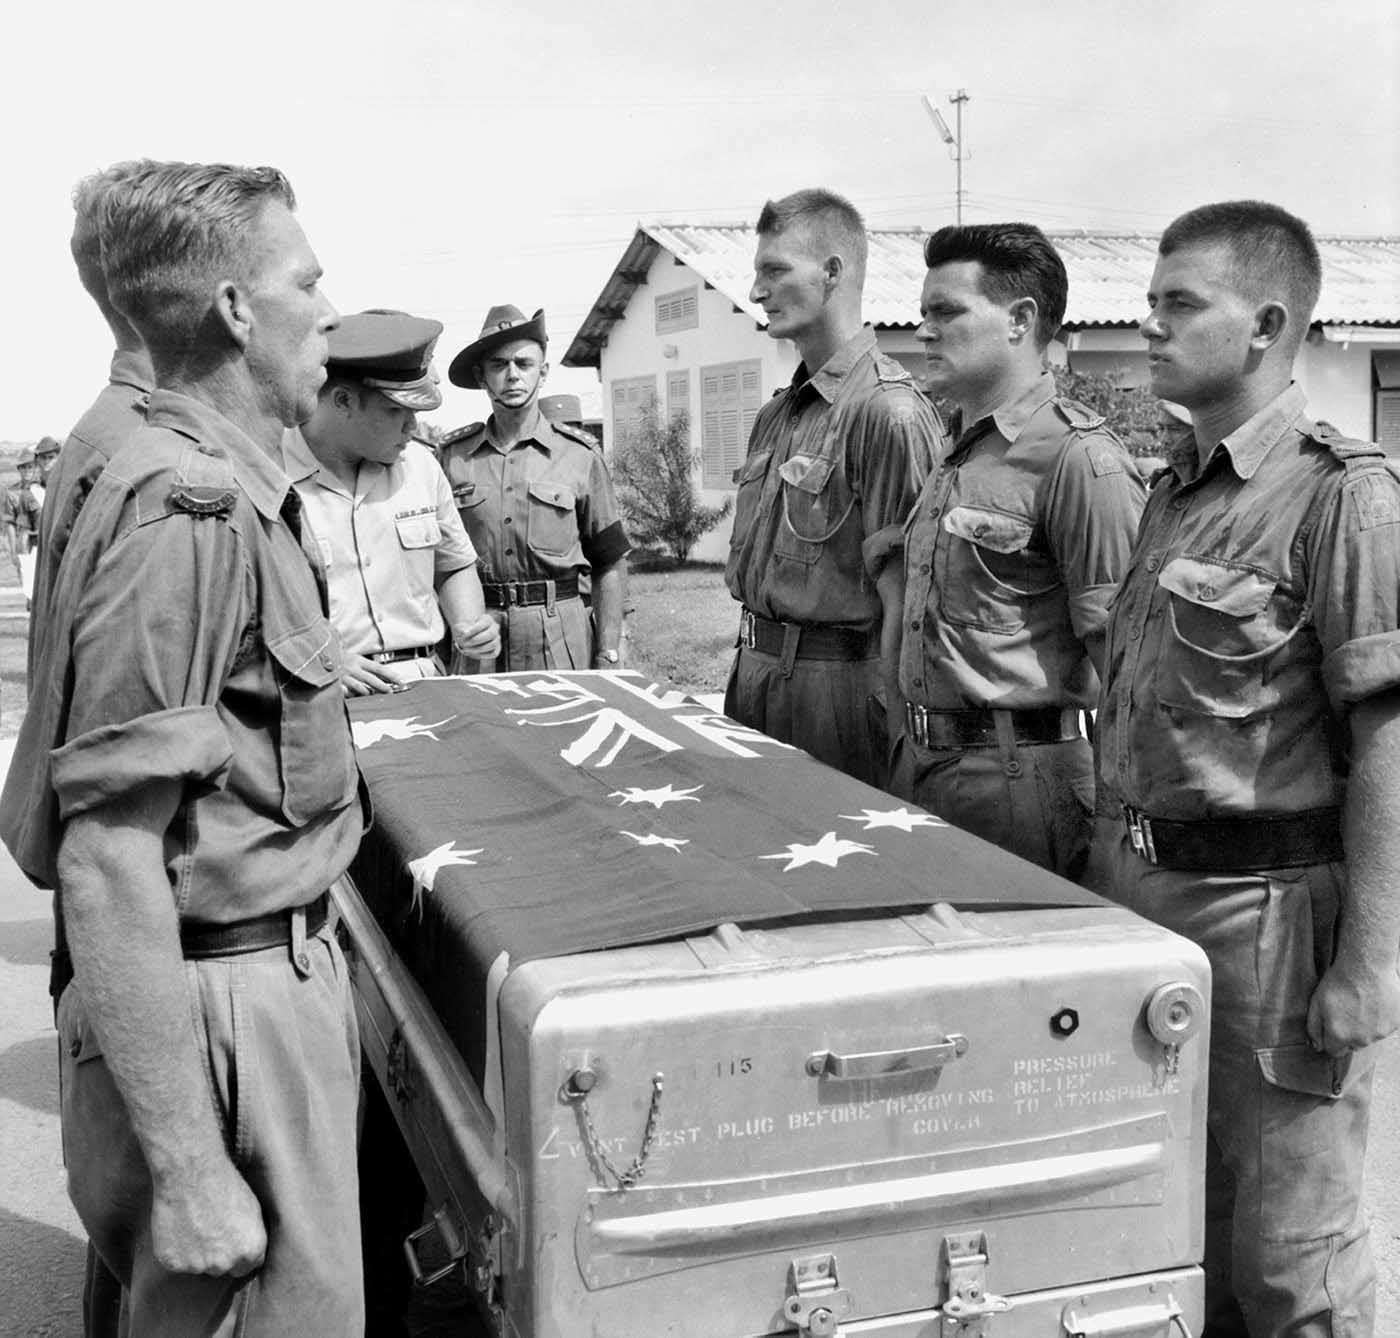 A black and white photograph of Australian soldiers in Saigon, Vietnam. They are standing at attention around a metal trunk which has an Australian flag draped over its top. - click to view larger image